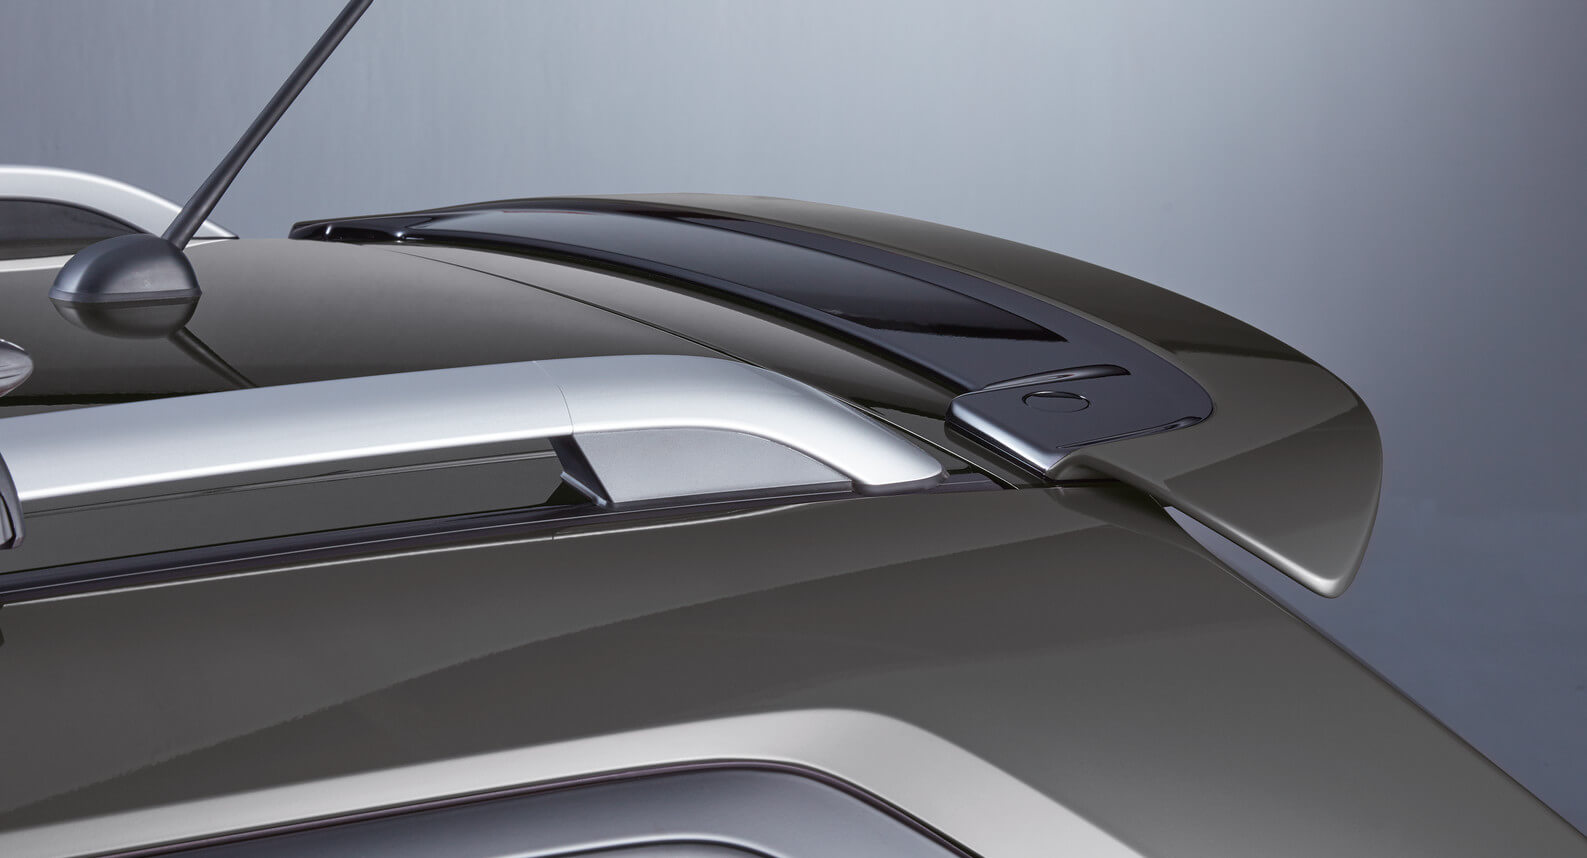 Ignis - Roof Edge Spoiler, Mineral Grey